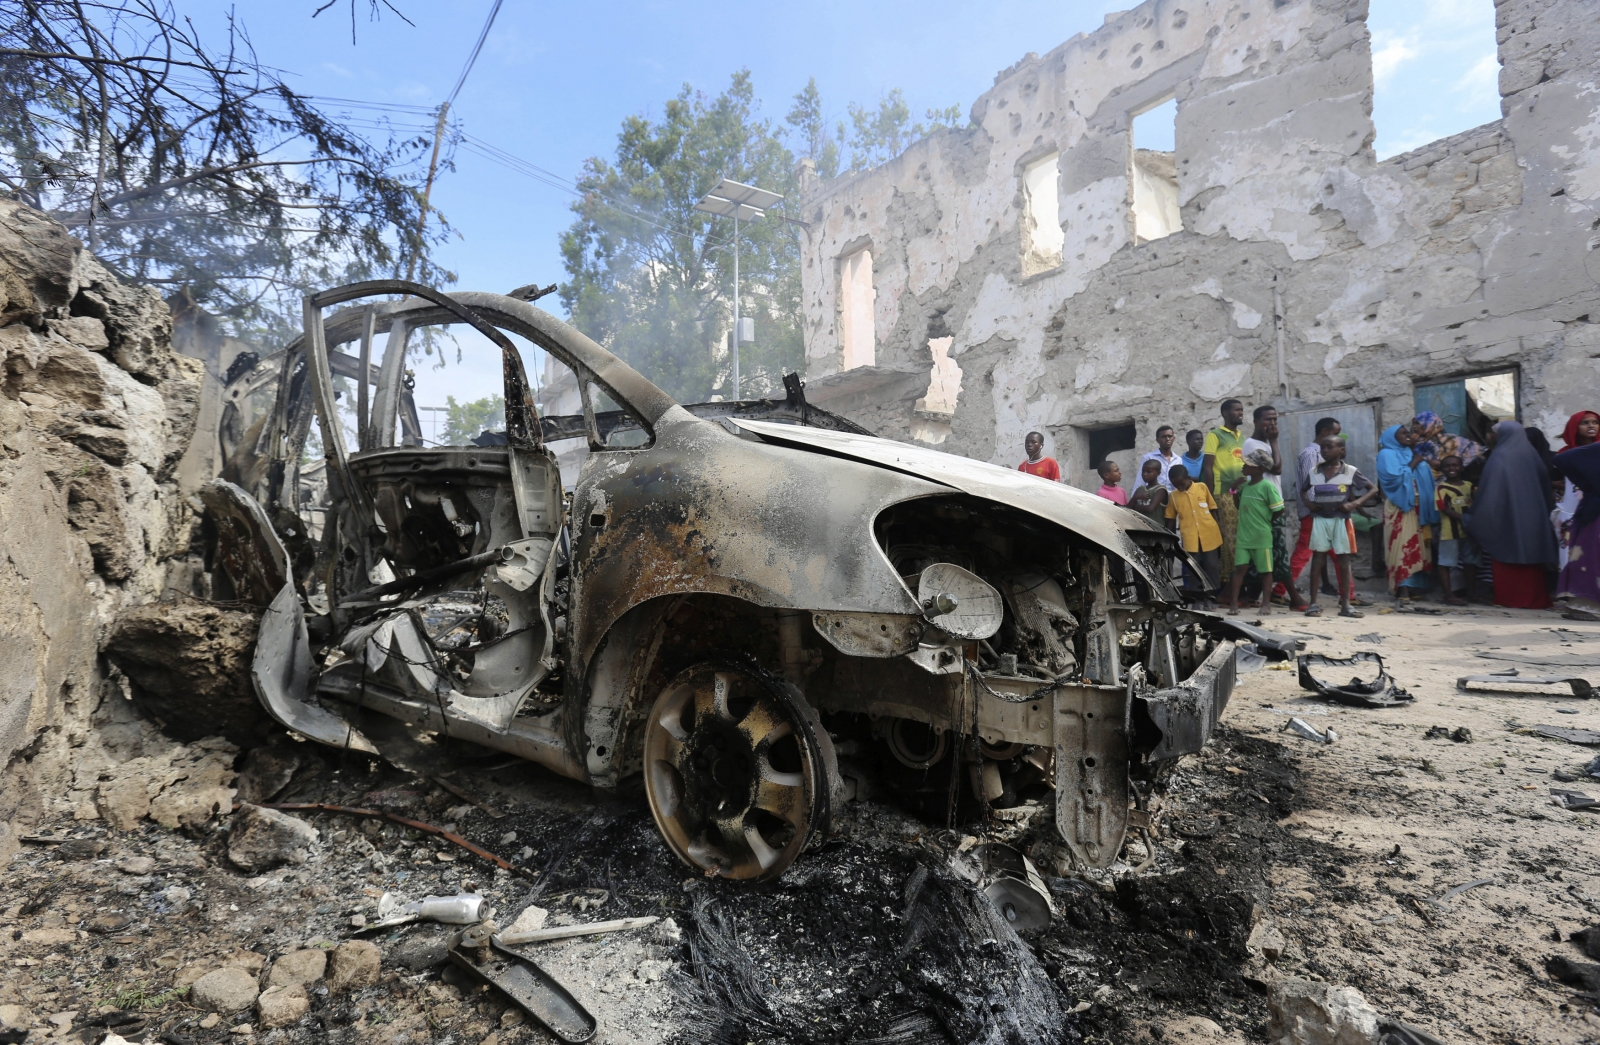 Somalia on high alert as al-Shabab nominates new leader following Ahmed Abdi Godane's death